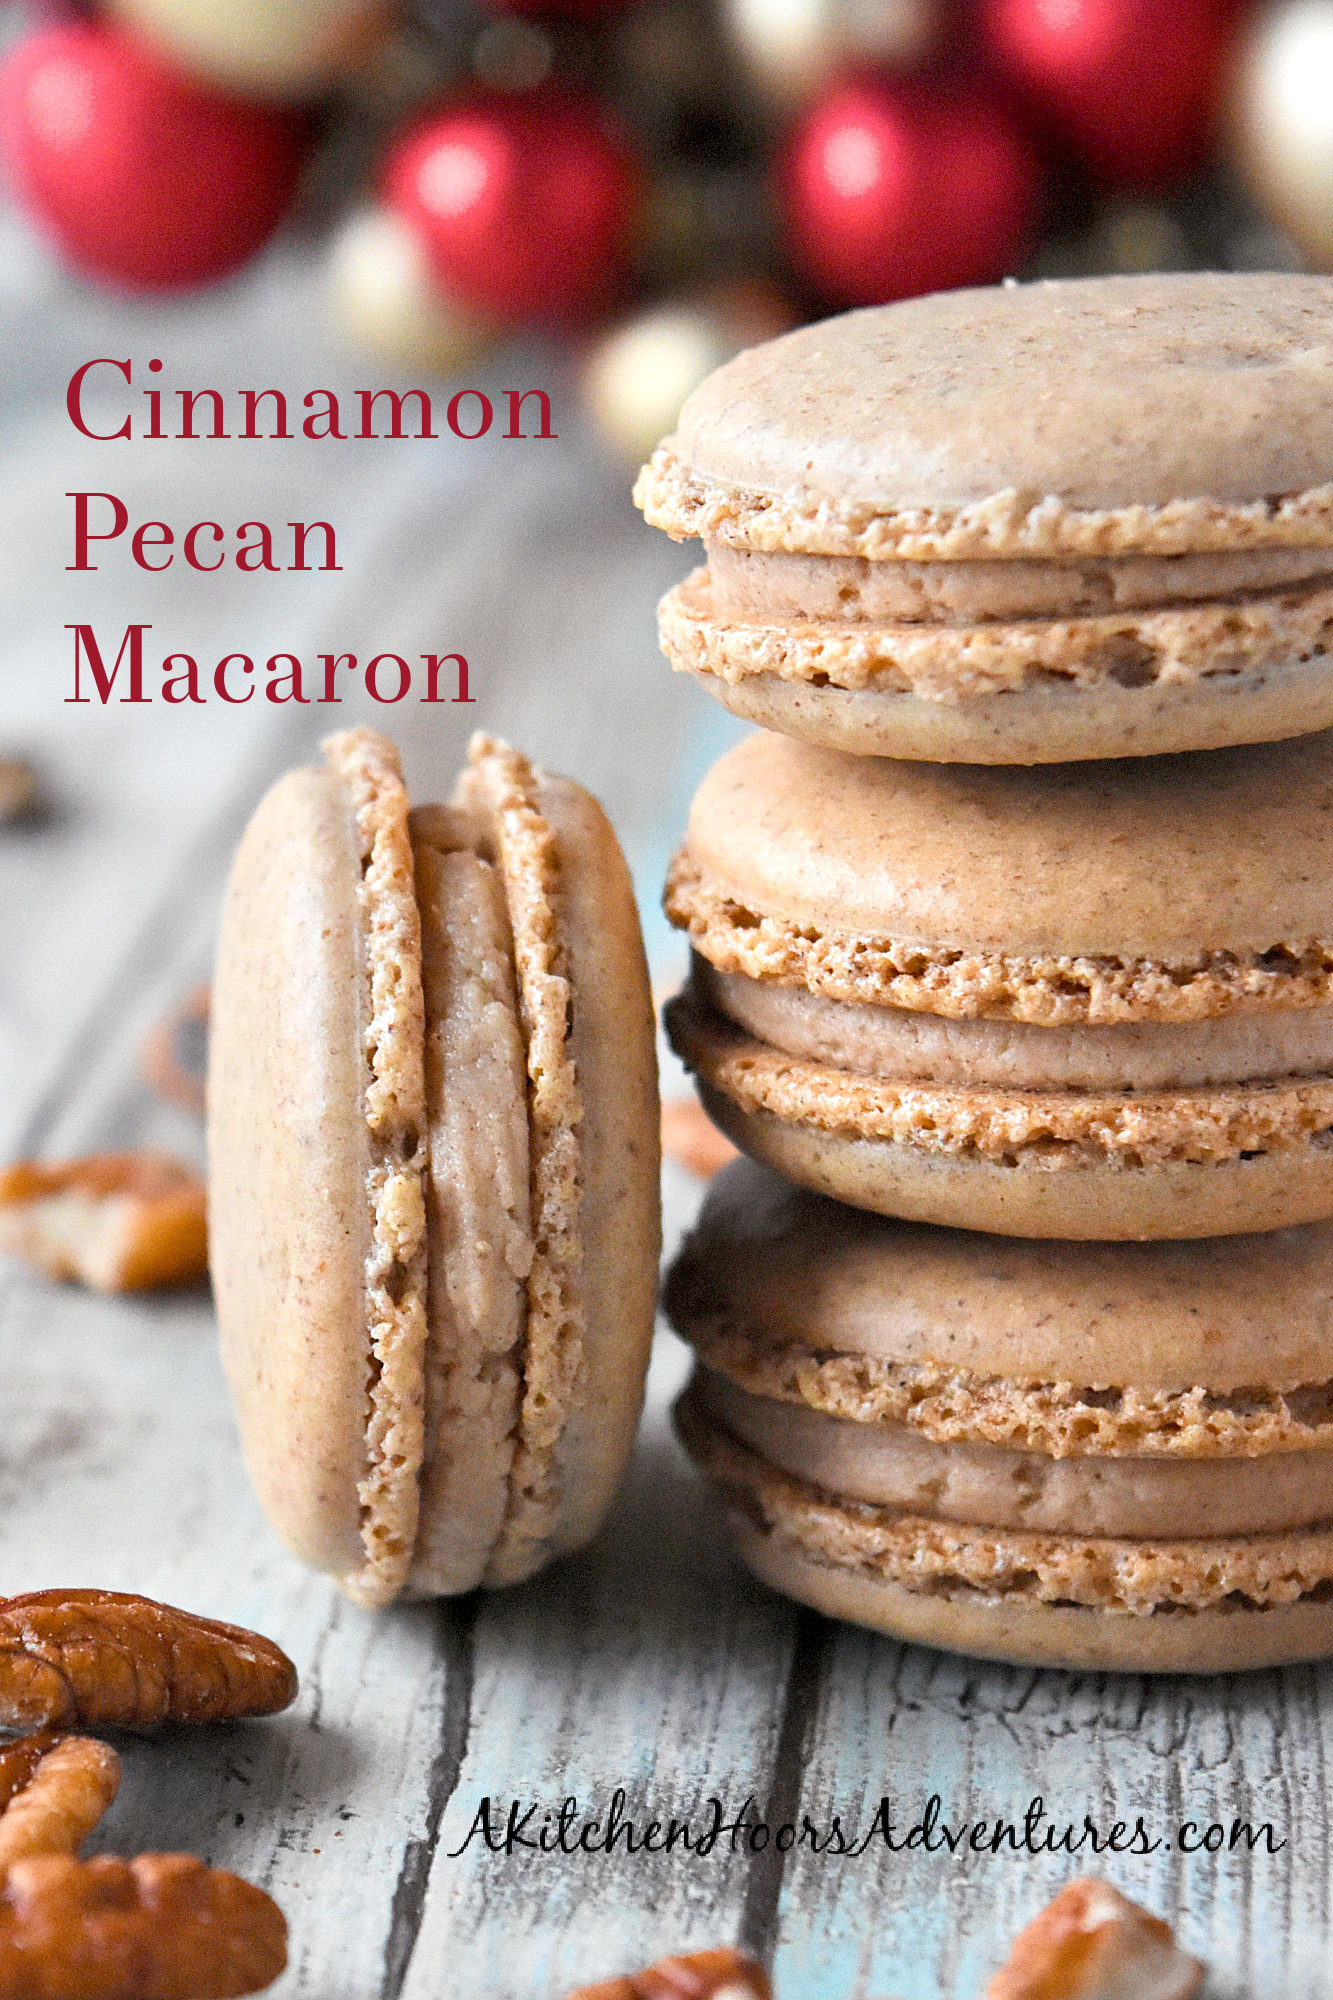 Cinnamon Pecan Macaron have the flavor of those fair cinnamon pecans in a macaron cookie.  They're packed with pecan and cinnamon flavors with a hint of caramel in the filling. #ChristmasCookies